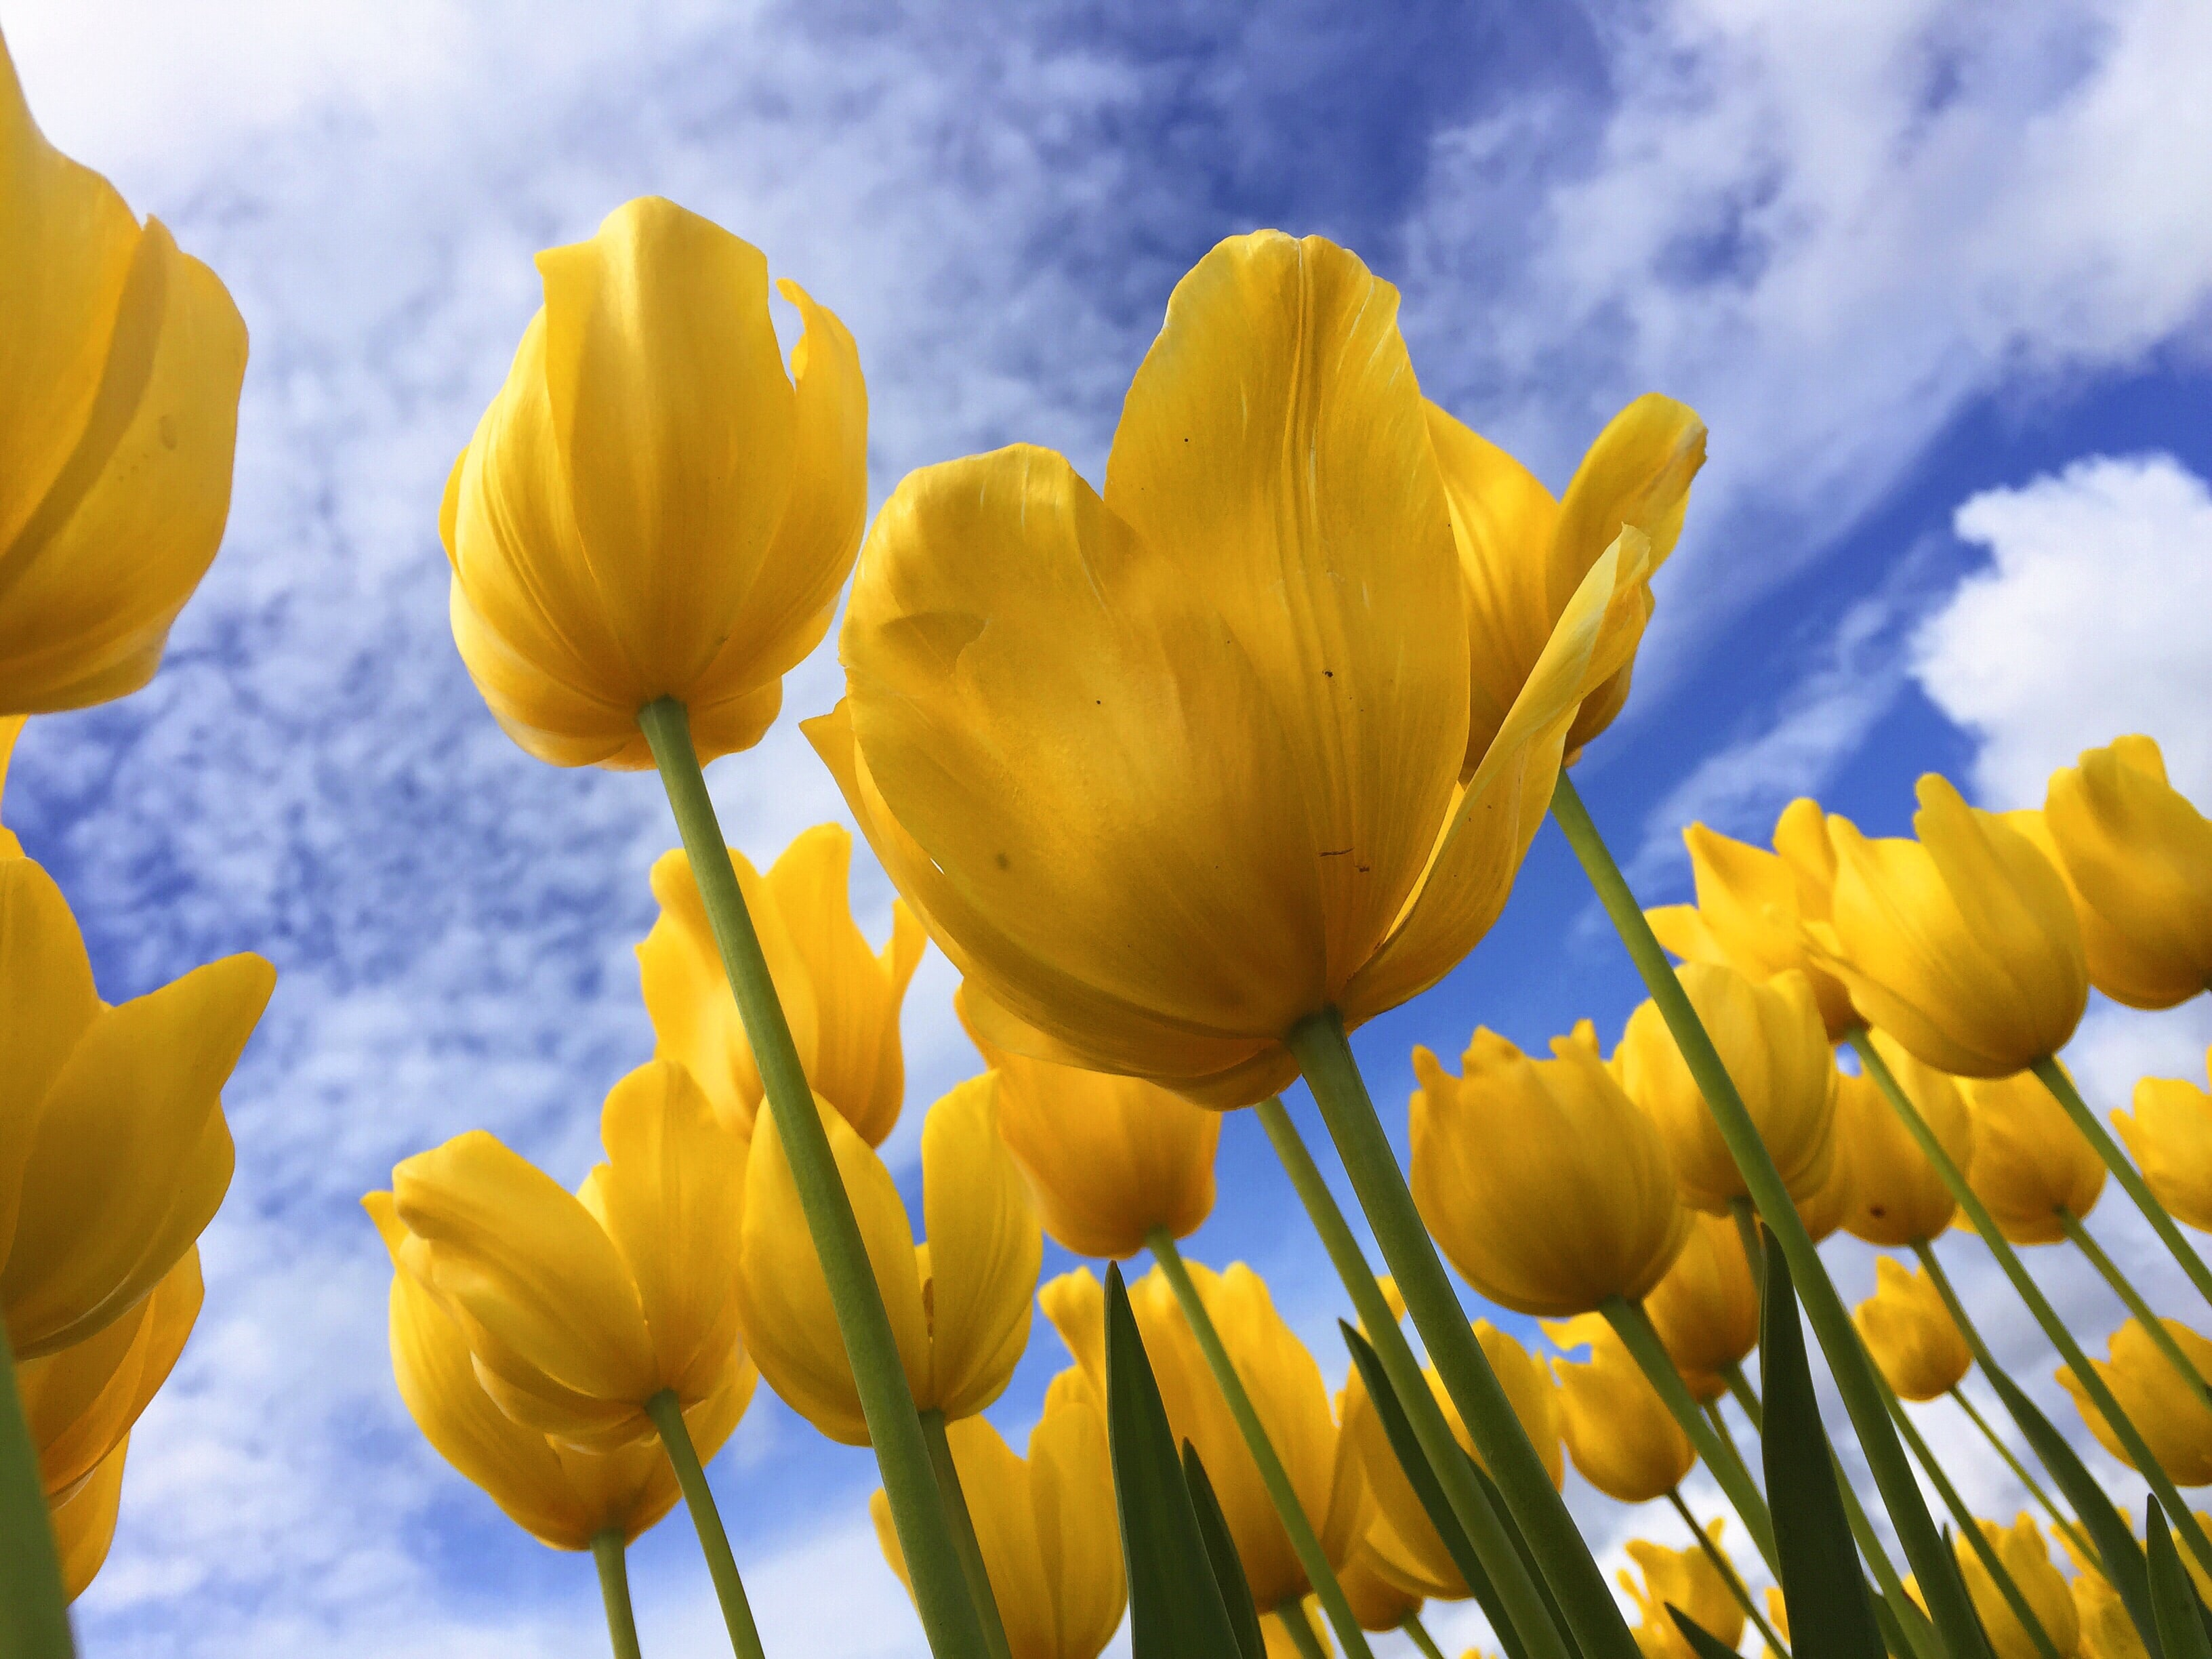 close-up photography of yellow petaled flowers